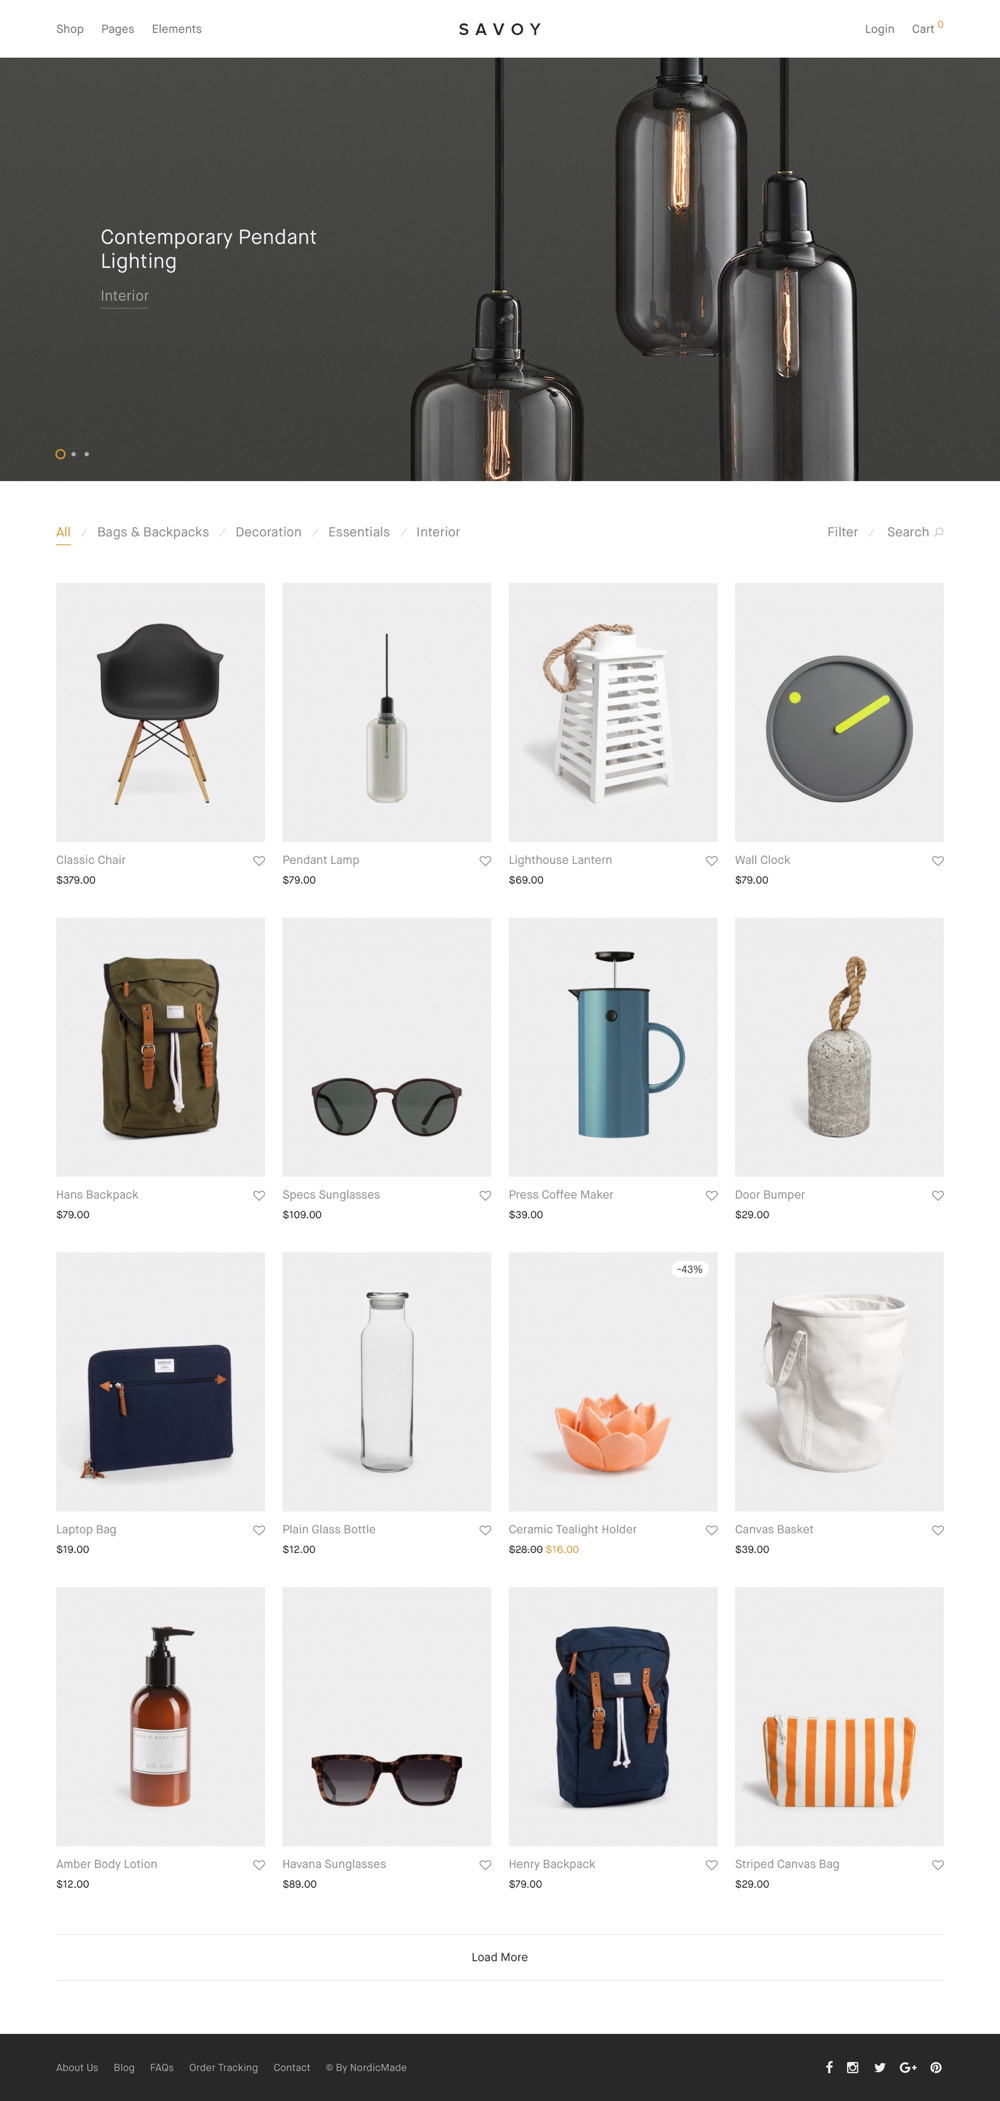 Savoy – Premium Shop Theme for WooCommerce